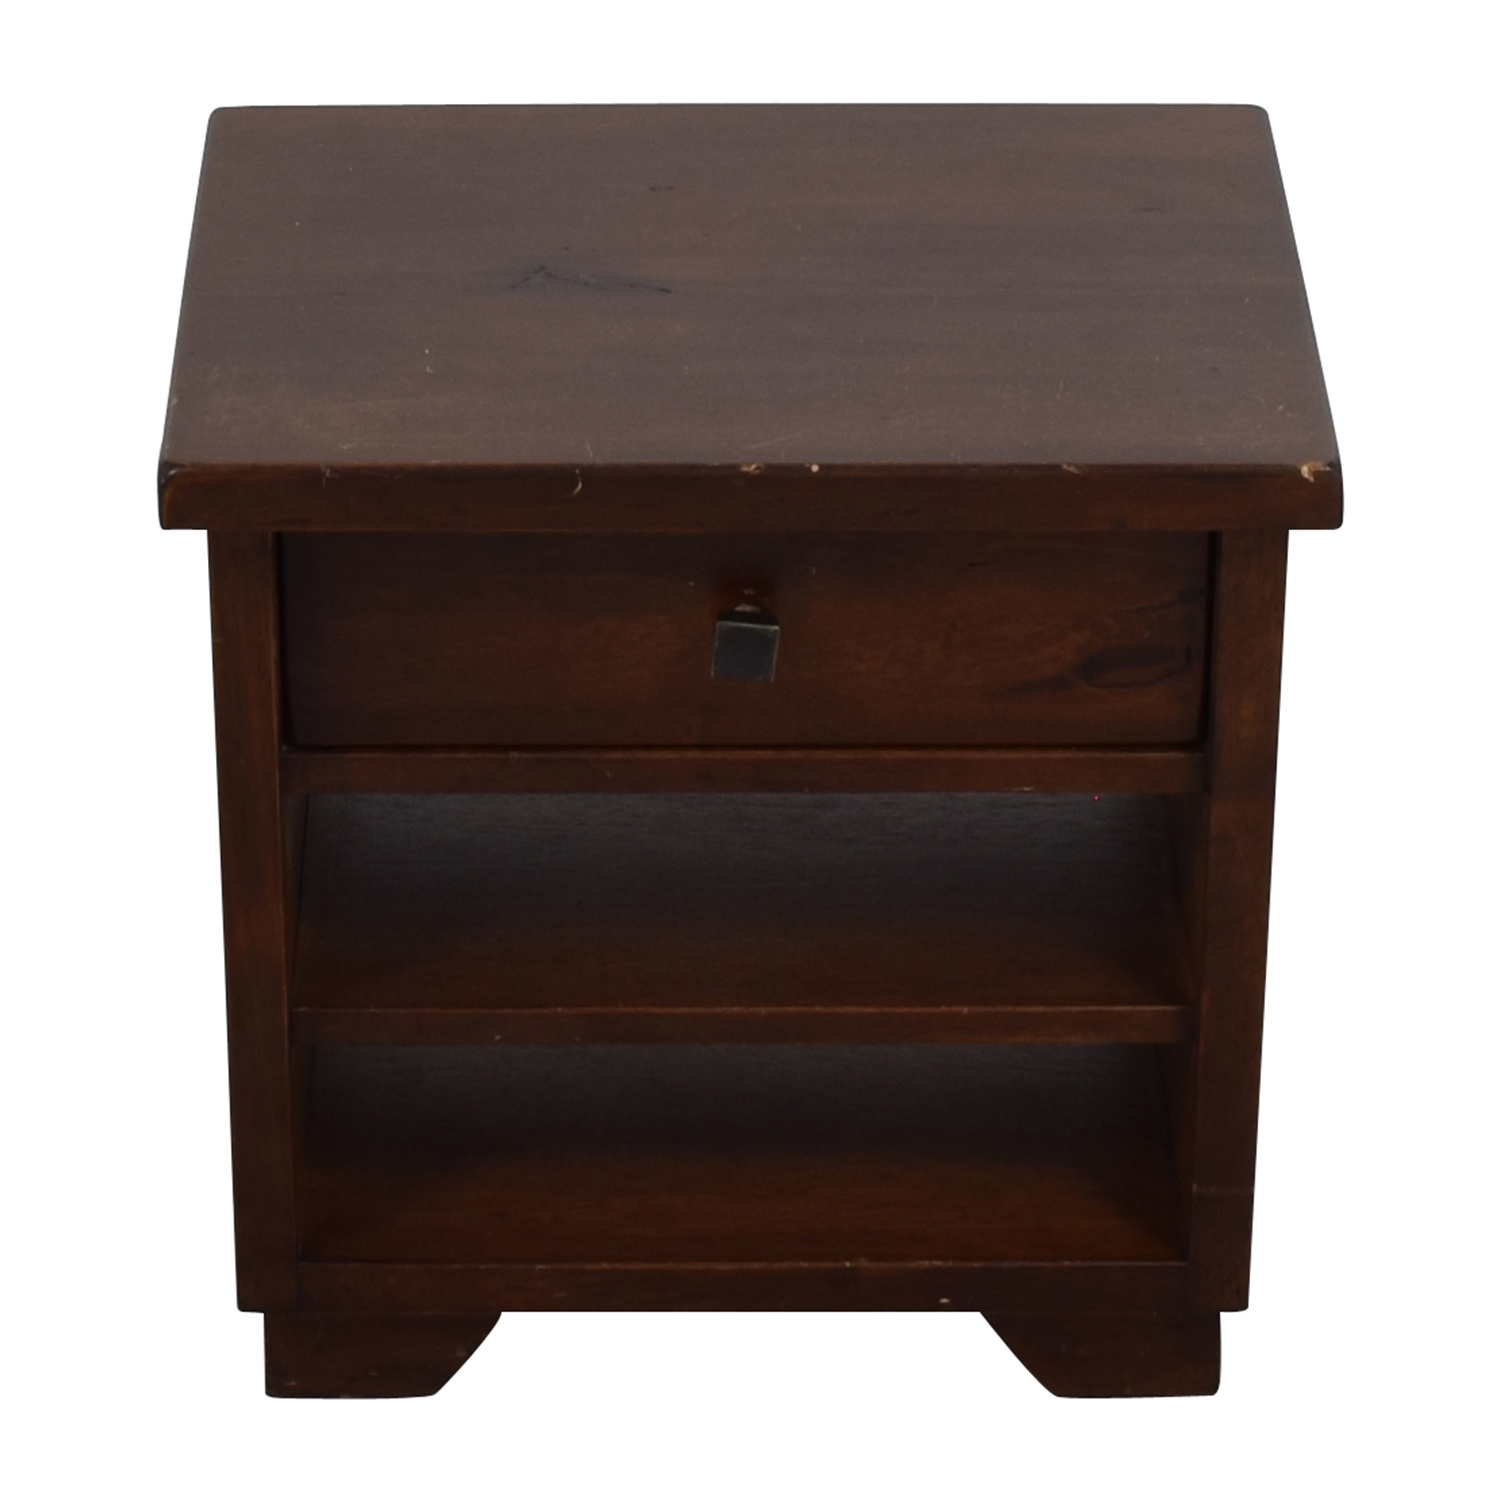 buy Pottery Barn Pottery Barn One-Drawer Bedside Table online